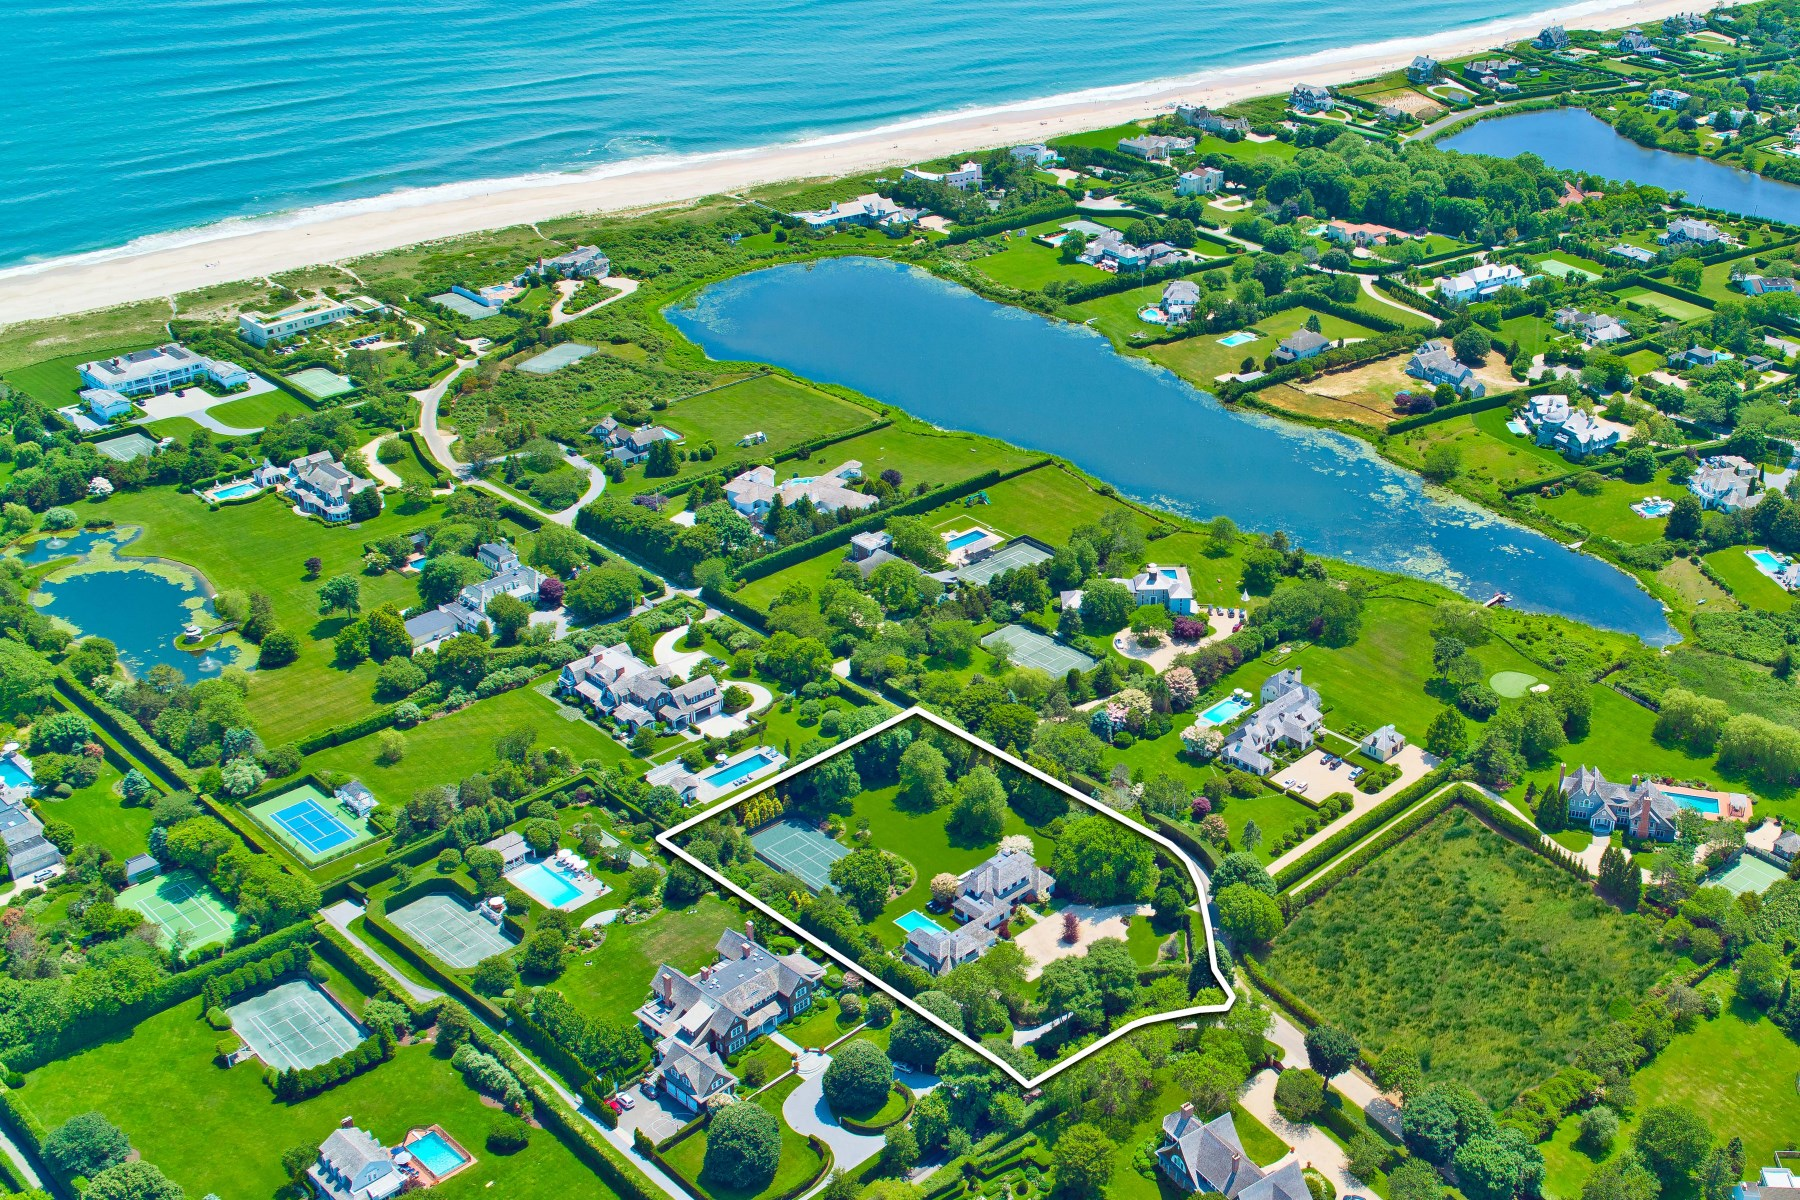 Single Family Home for Sale at Southampton Estate with Ocean Access Southampton, New York, 11968 United States